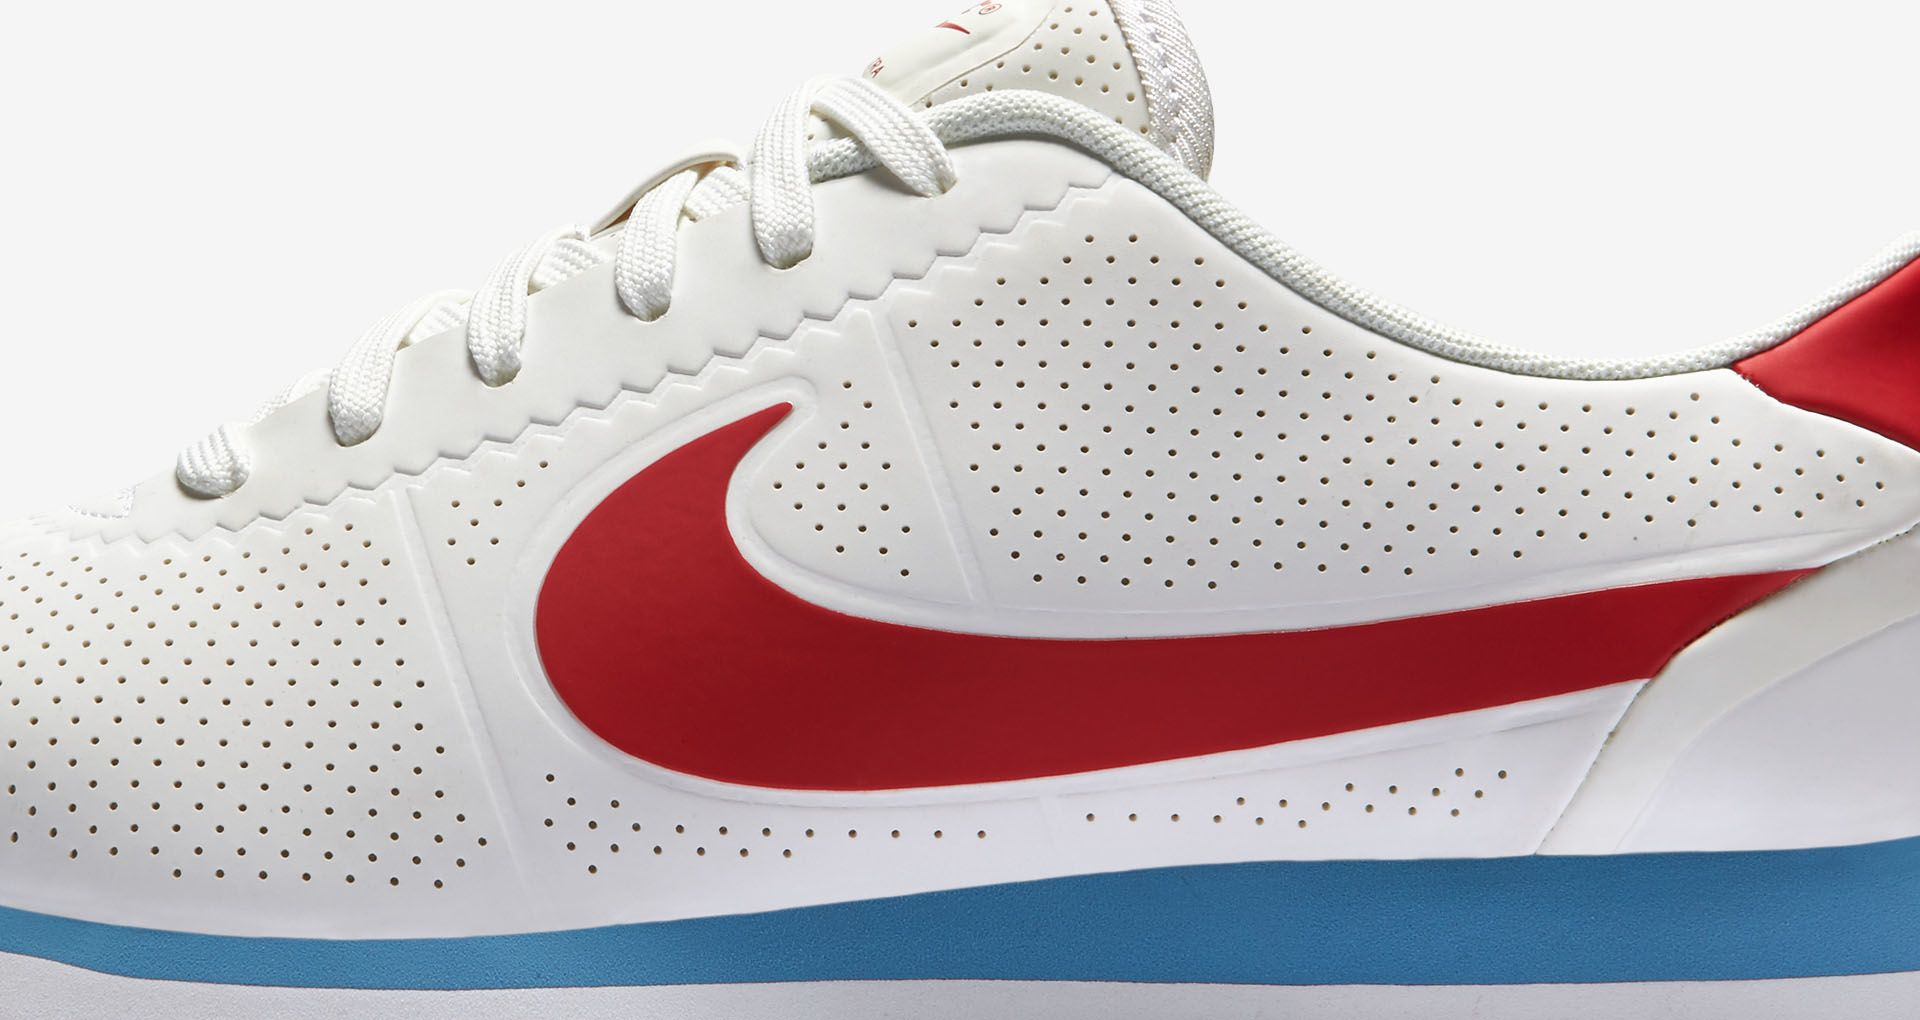 check out 8a990 90779 Women s Nike Cortez Ultra Moire  White, Varsity Red   Blue  Release Date